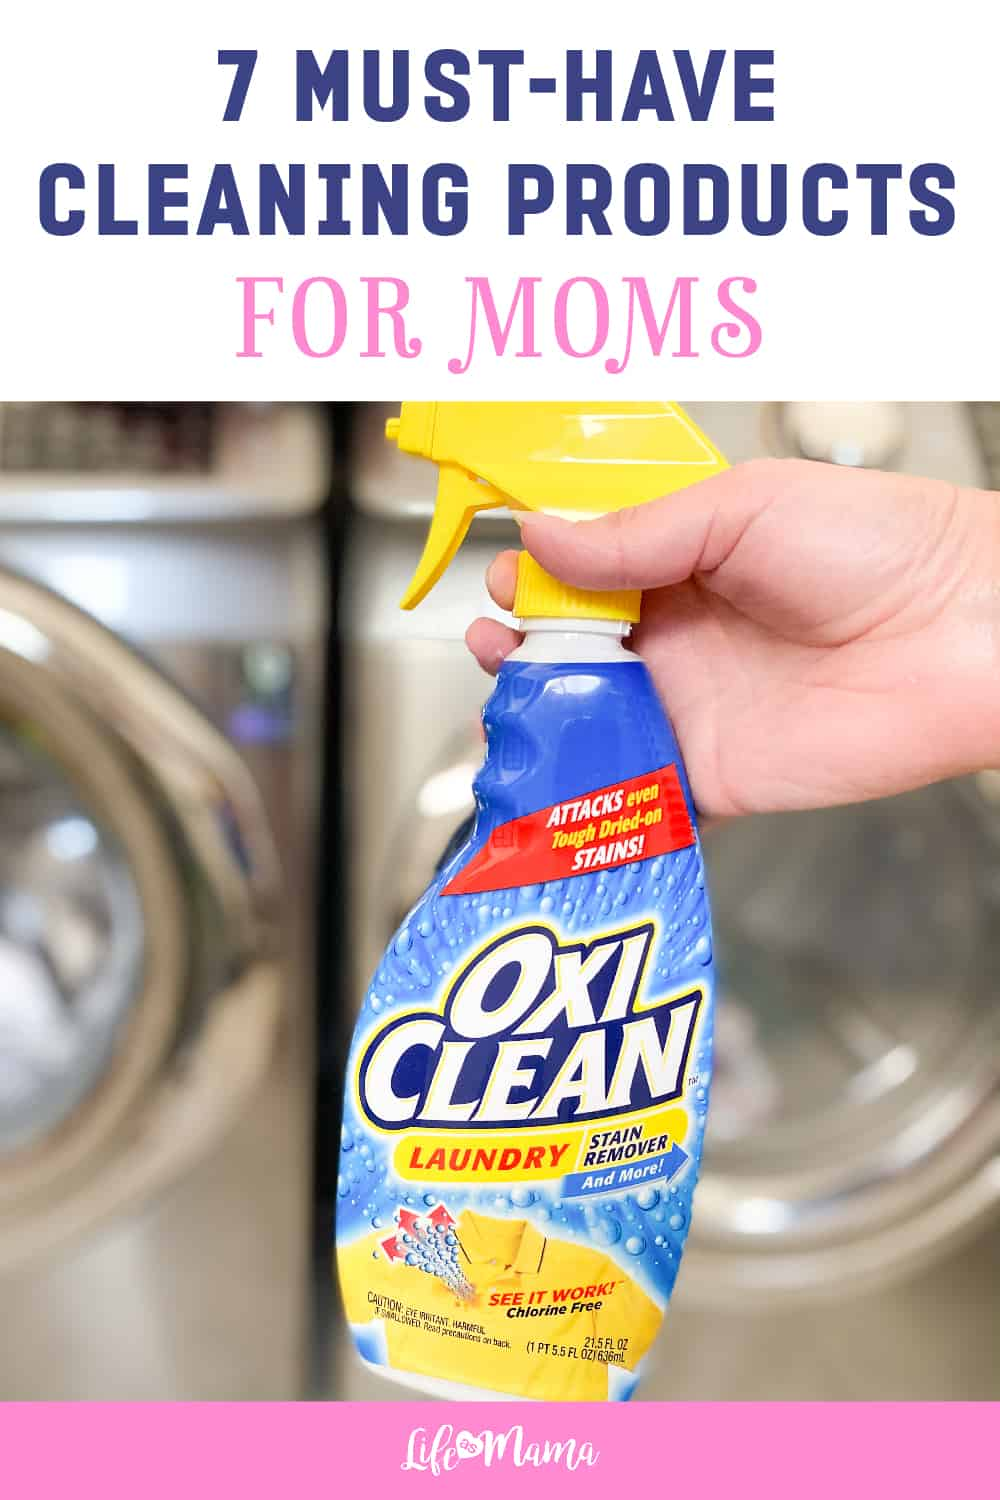 7 Must-Have Cleaning Products For Moms